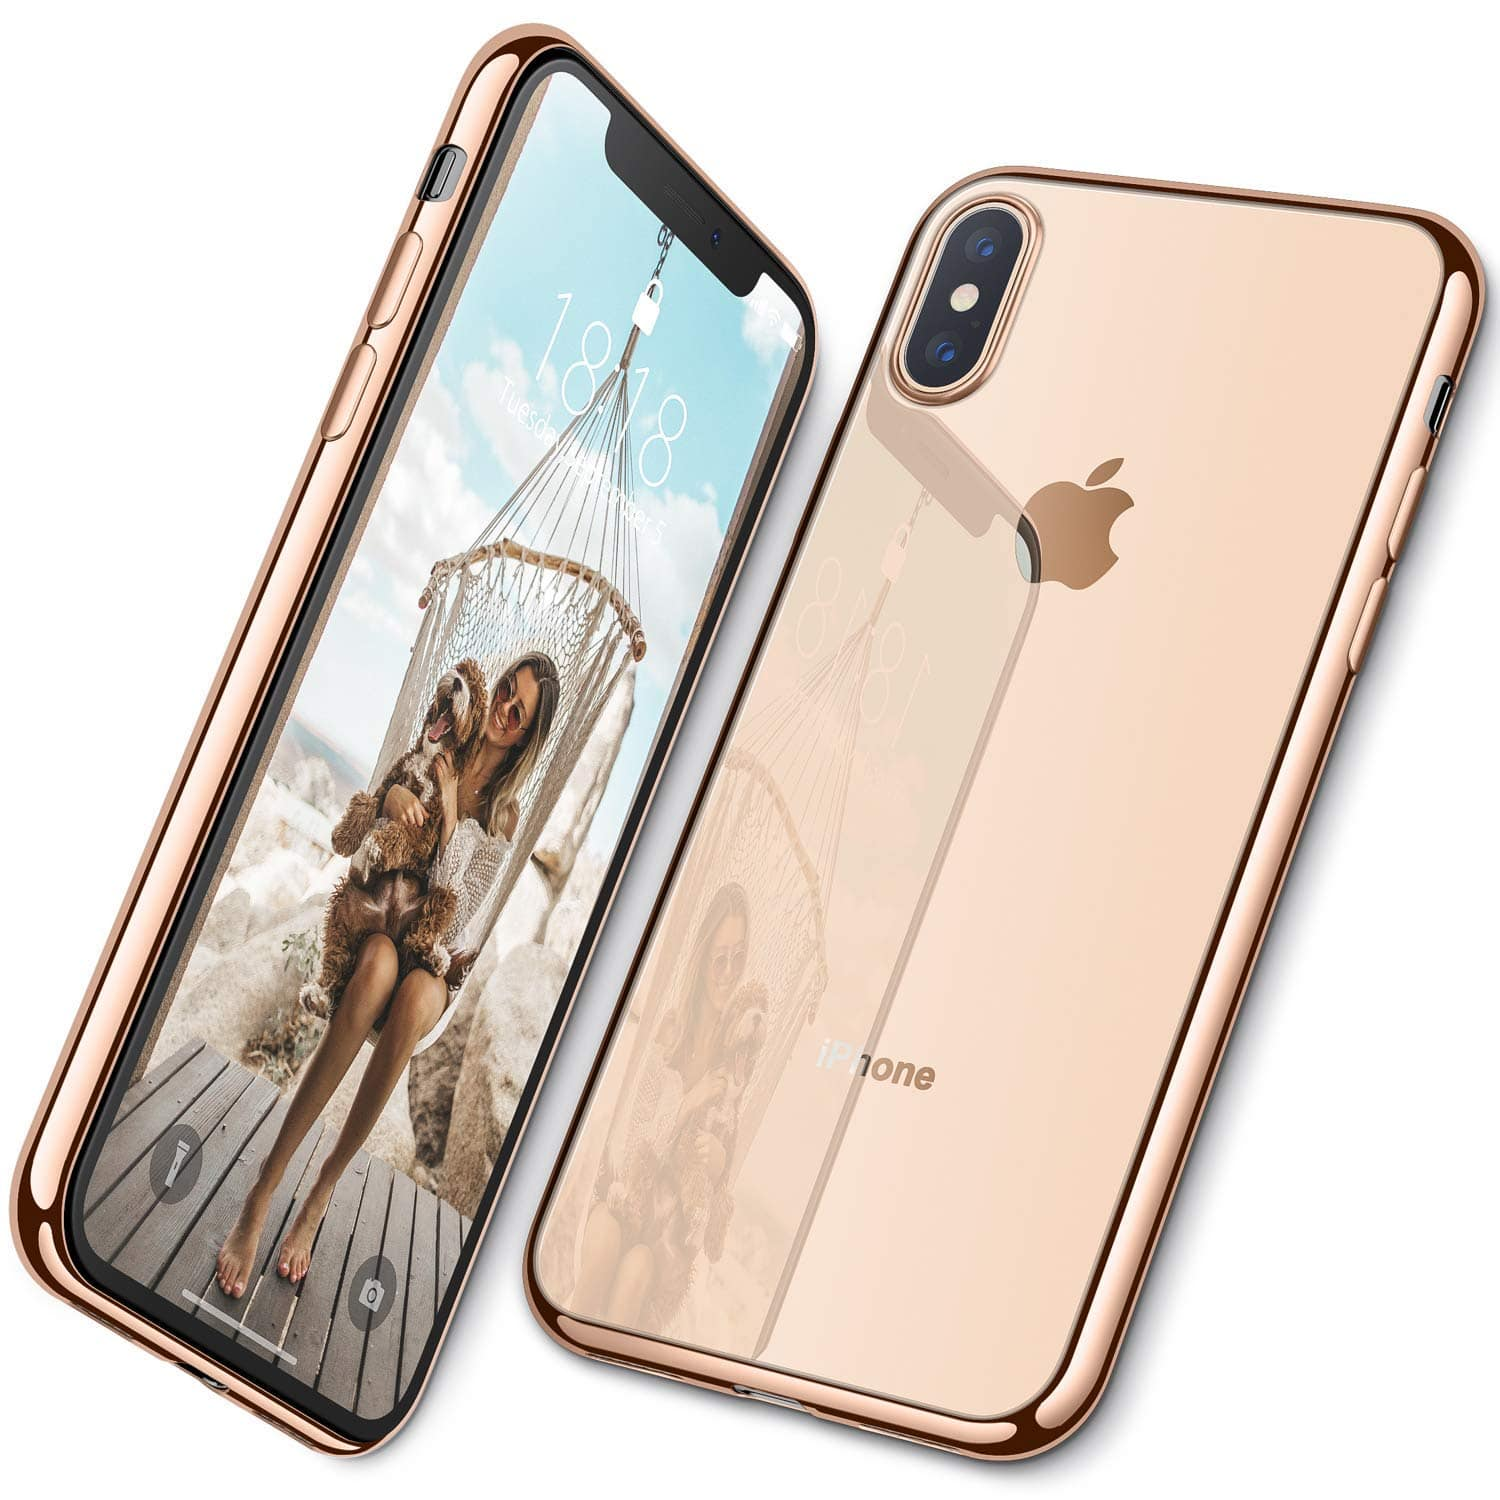 DTTO Cases for iPhone XS Max or iPhone XR from $3.20